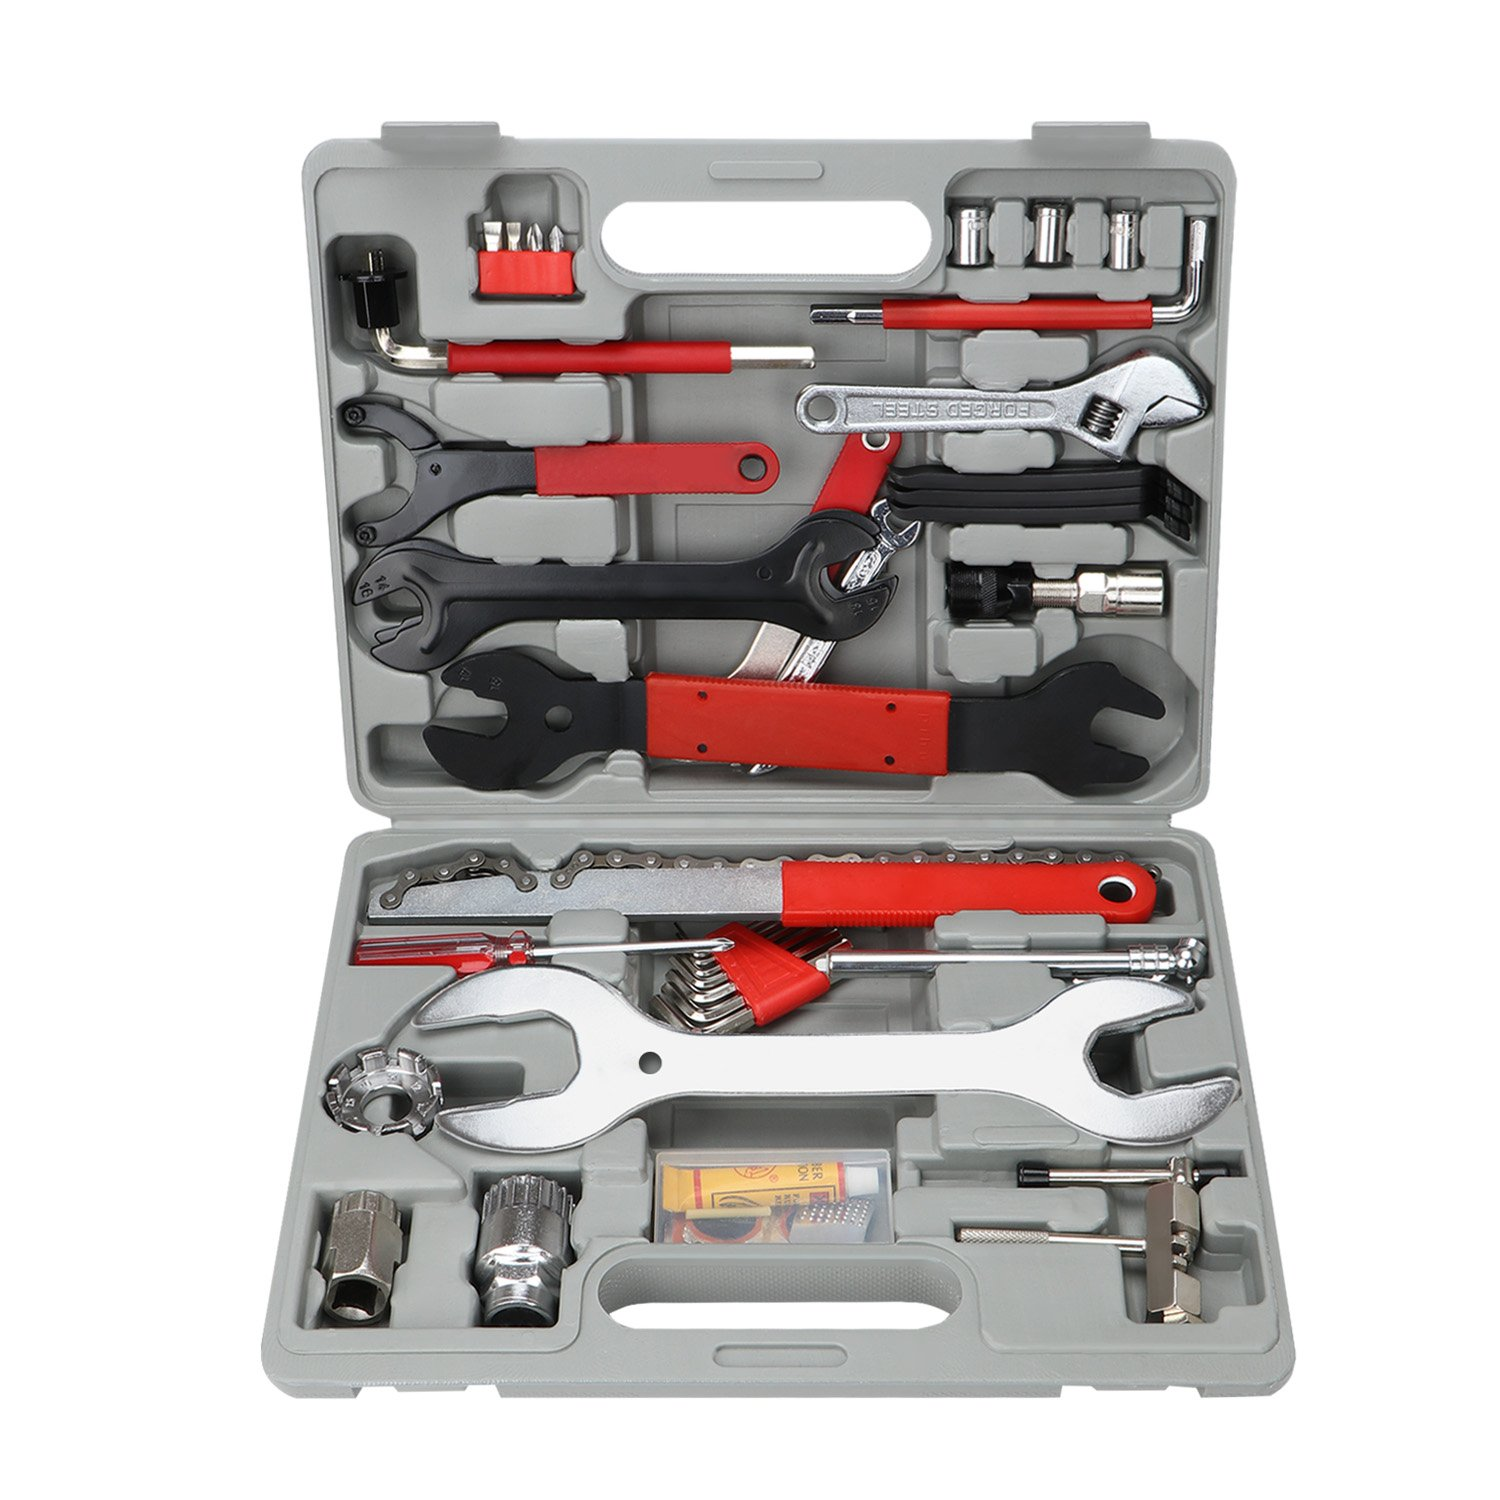 OCGIG 48 Pcs Professional Bike Repair Tools Set Kit Multi-Functional Bicycle Maintenance Tools